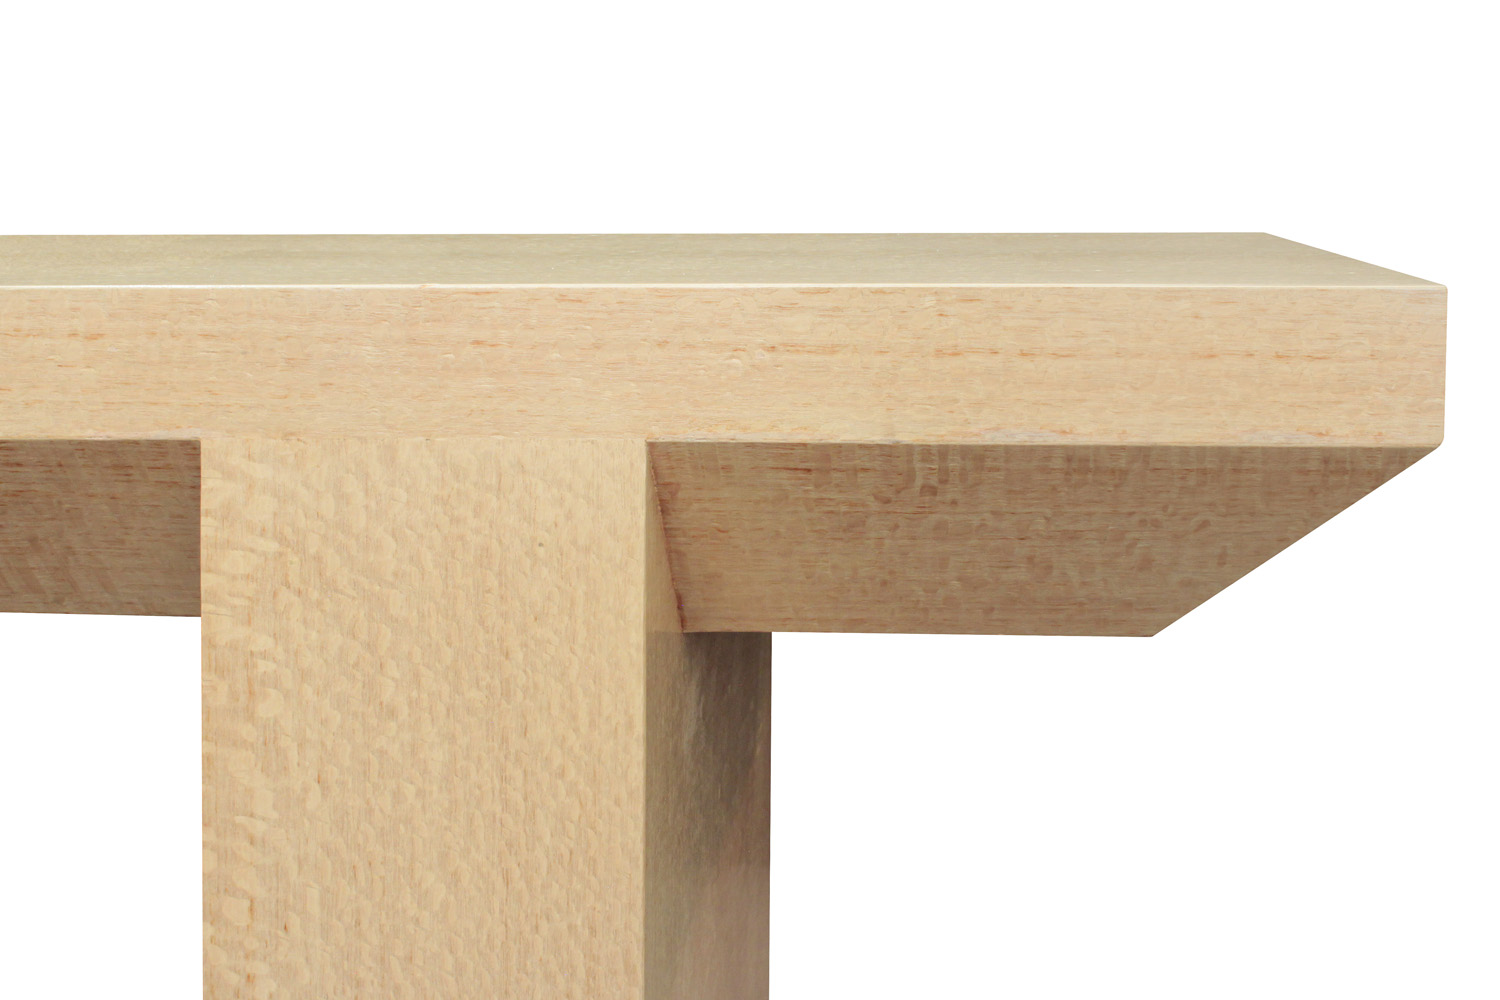 Springer 120 Altar Style lacewood consoletable99 detail3 hires.jpg